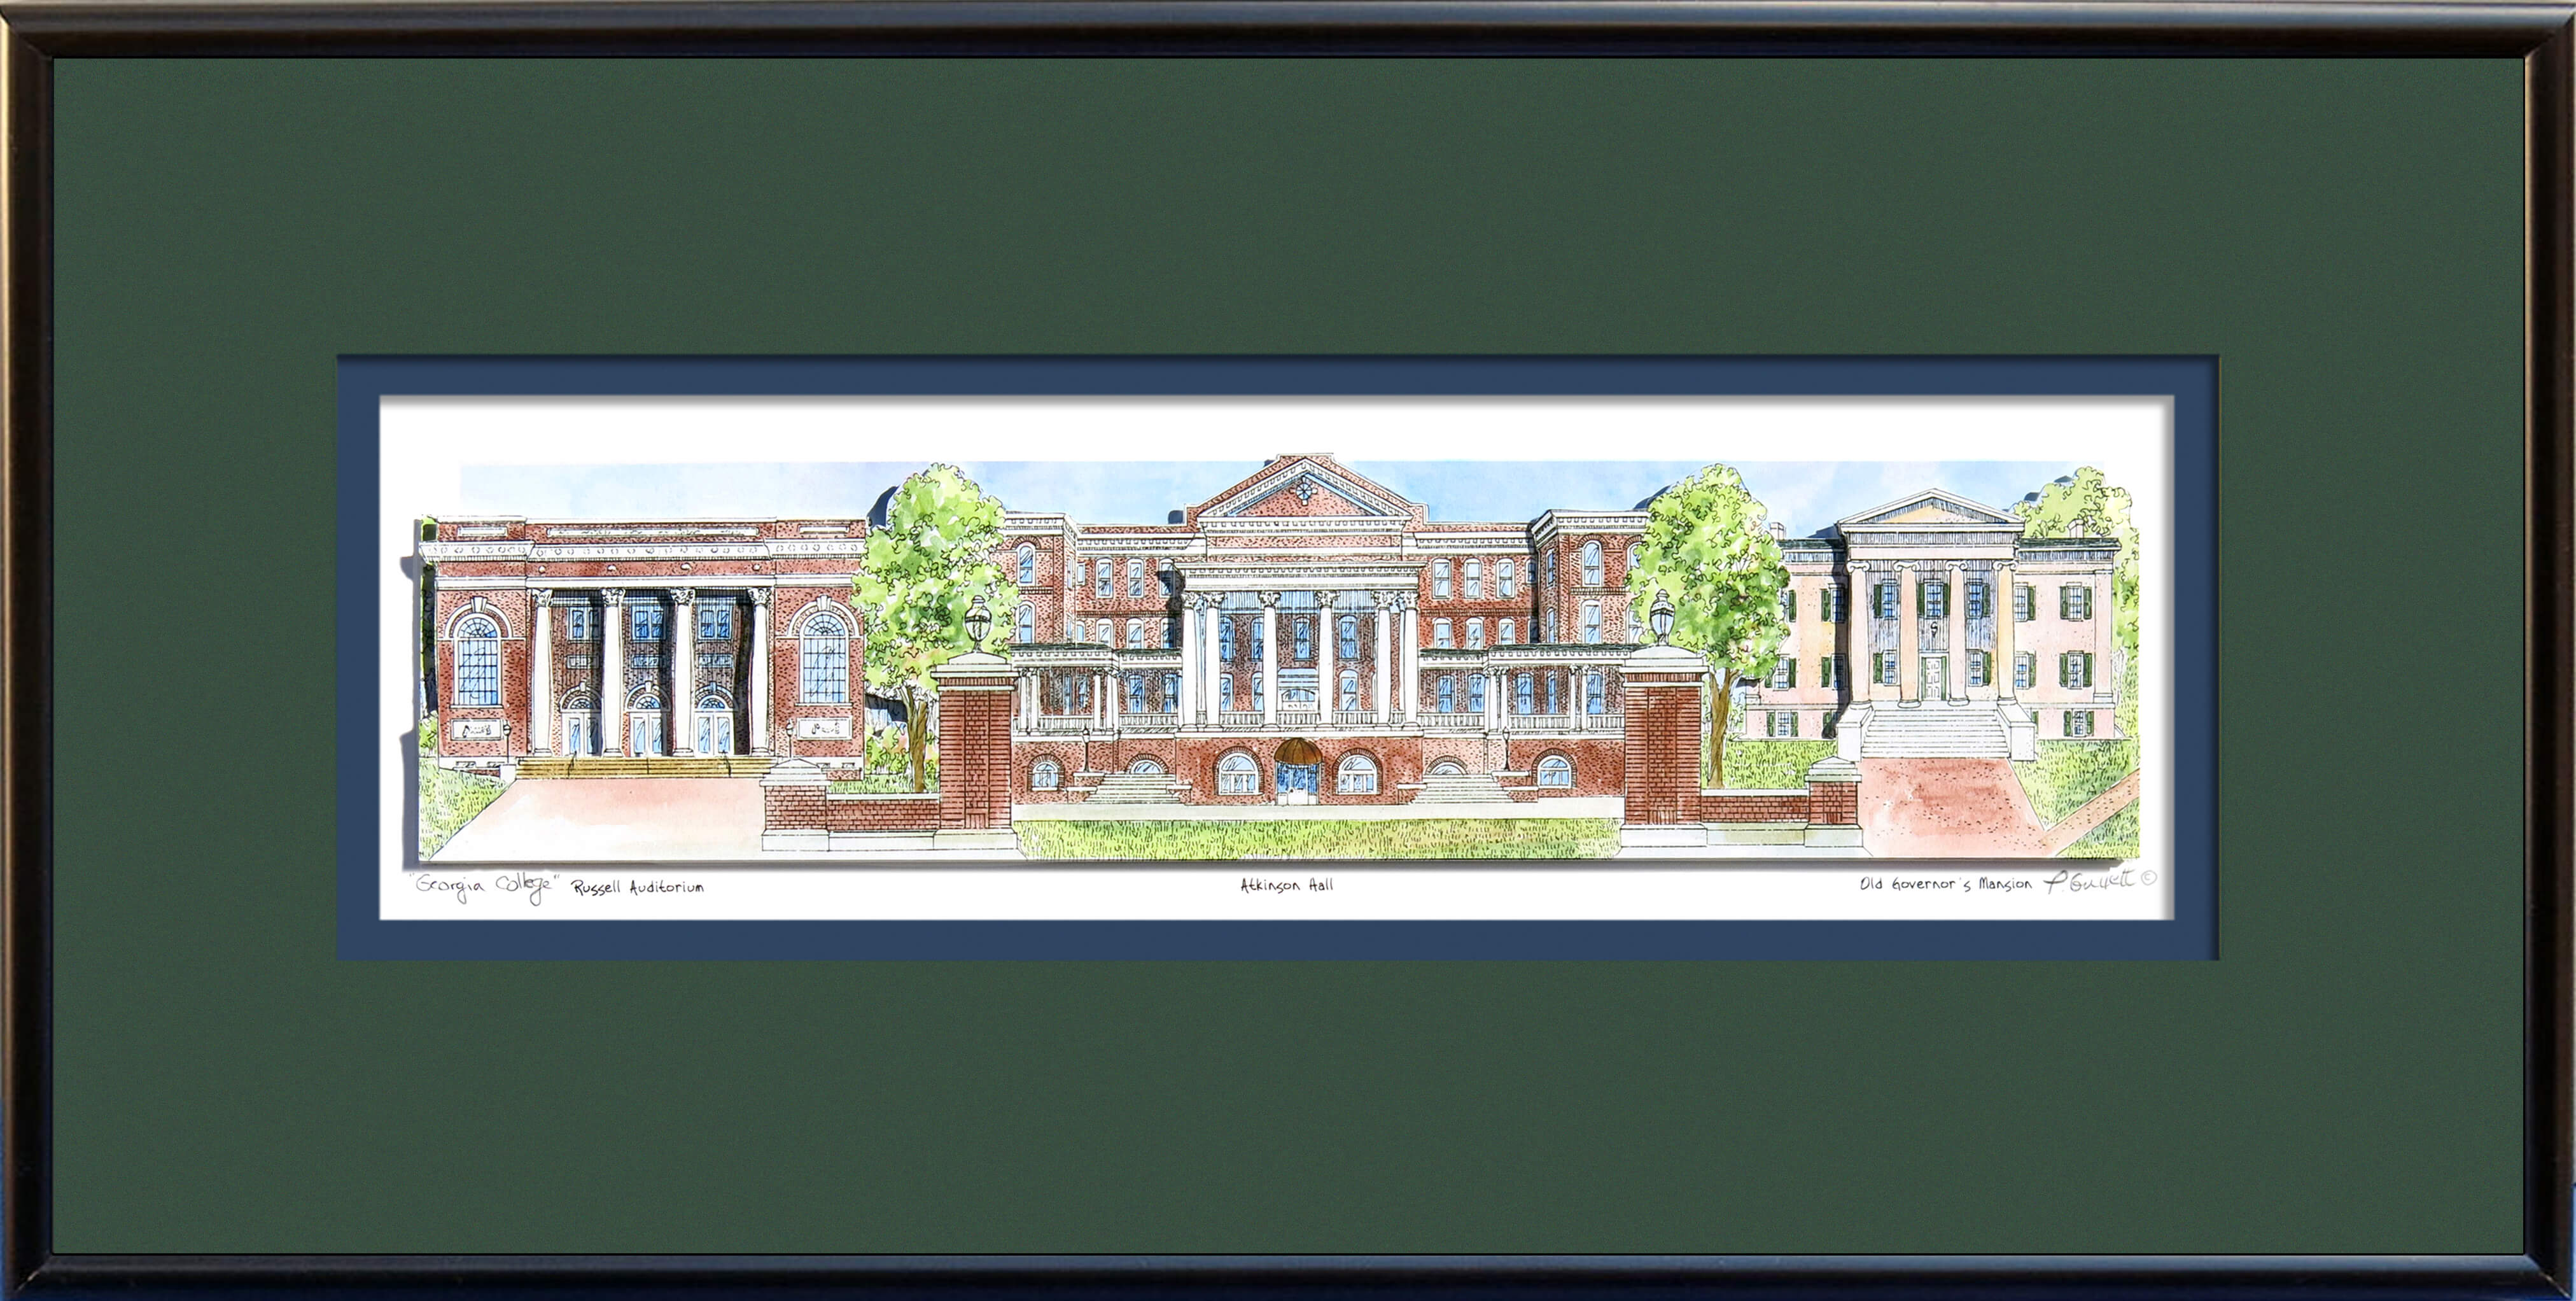 GA COLLEGE FRAMED